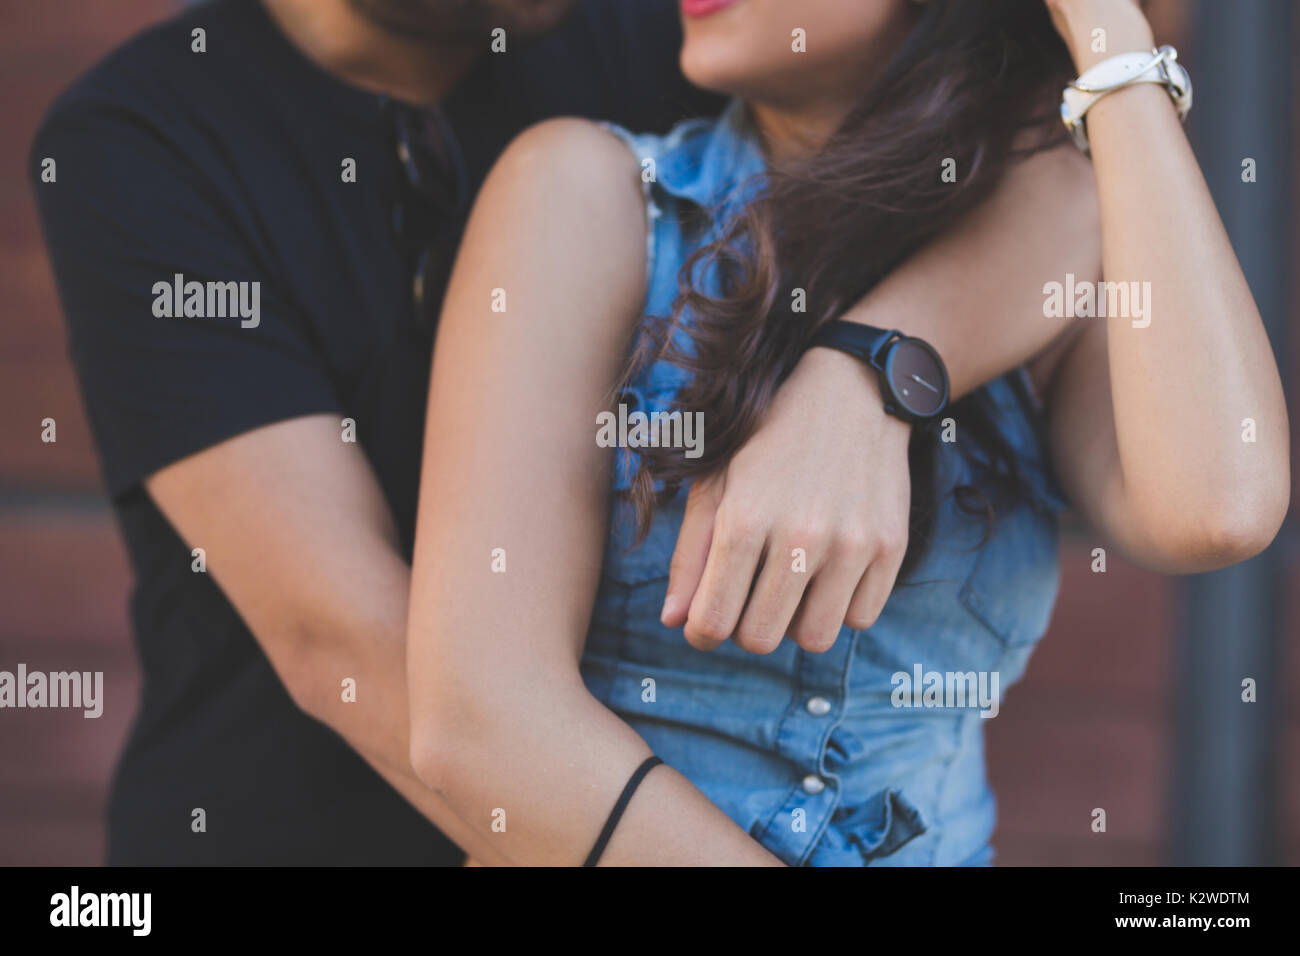 Cropped portrait of young couple embracing ensemble Photo Stock